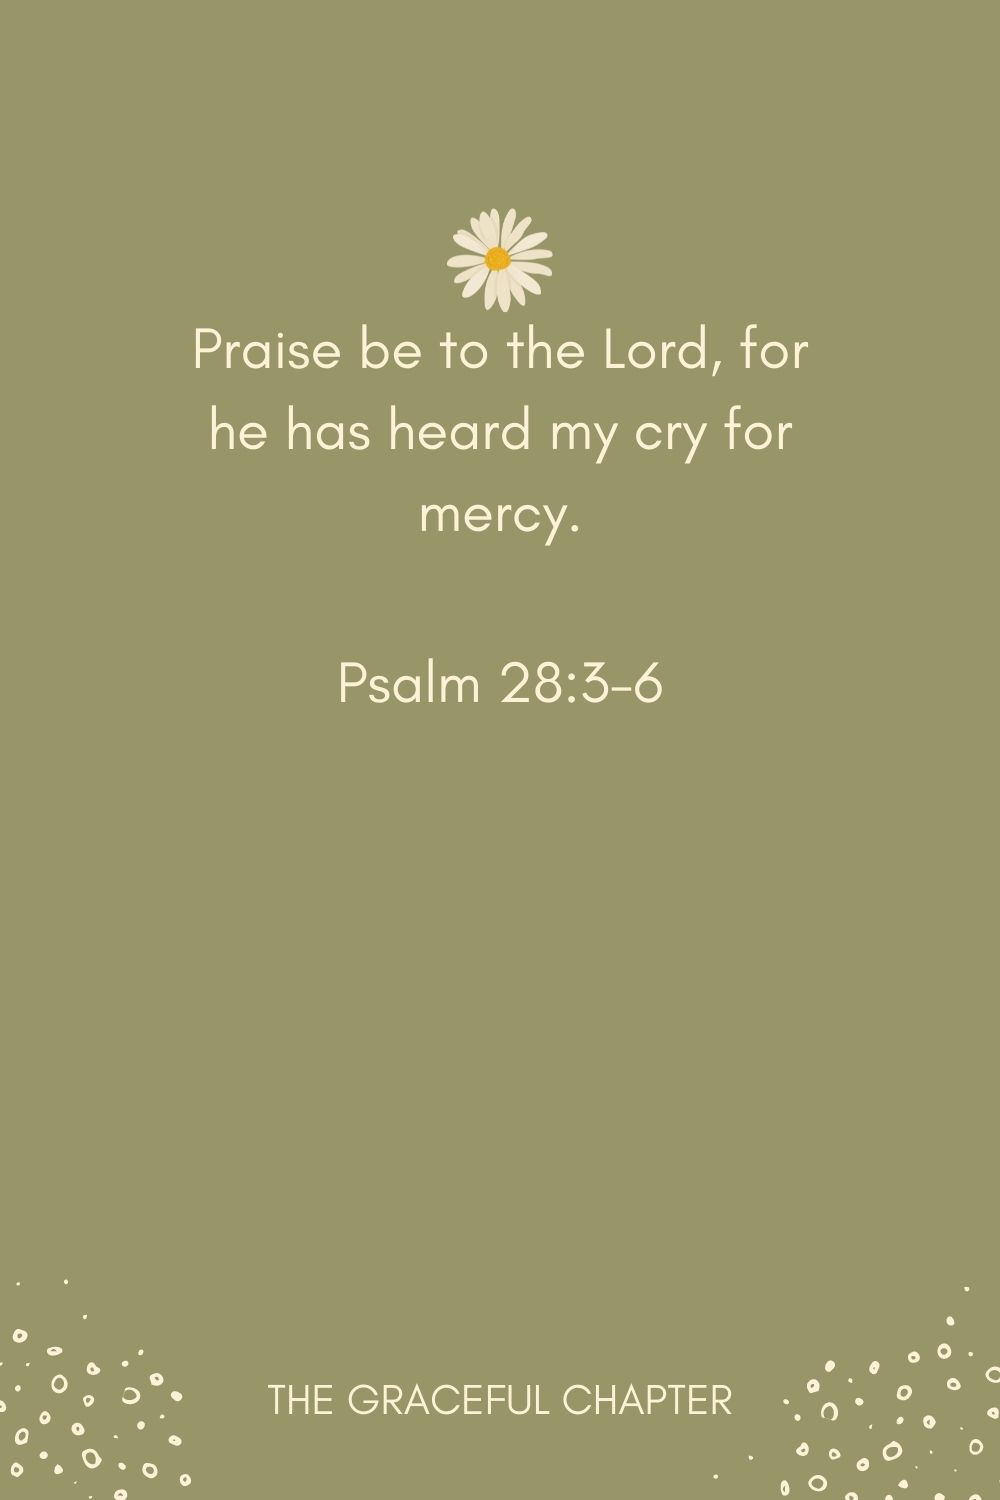 Praise be to the Lord, for he has heard my cry for mercy. Psalm 28:3-6